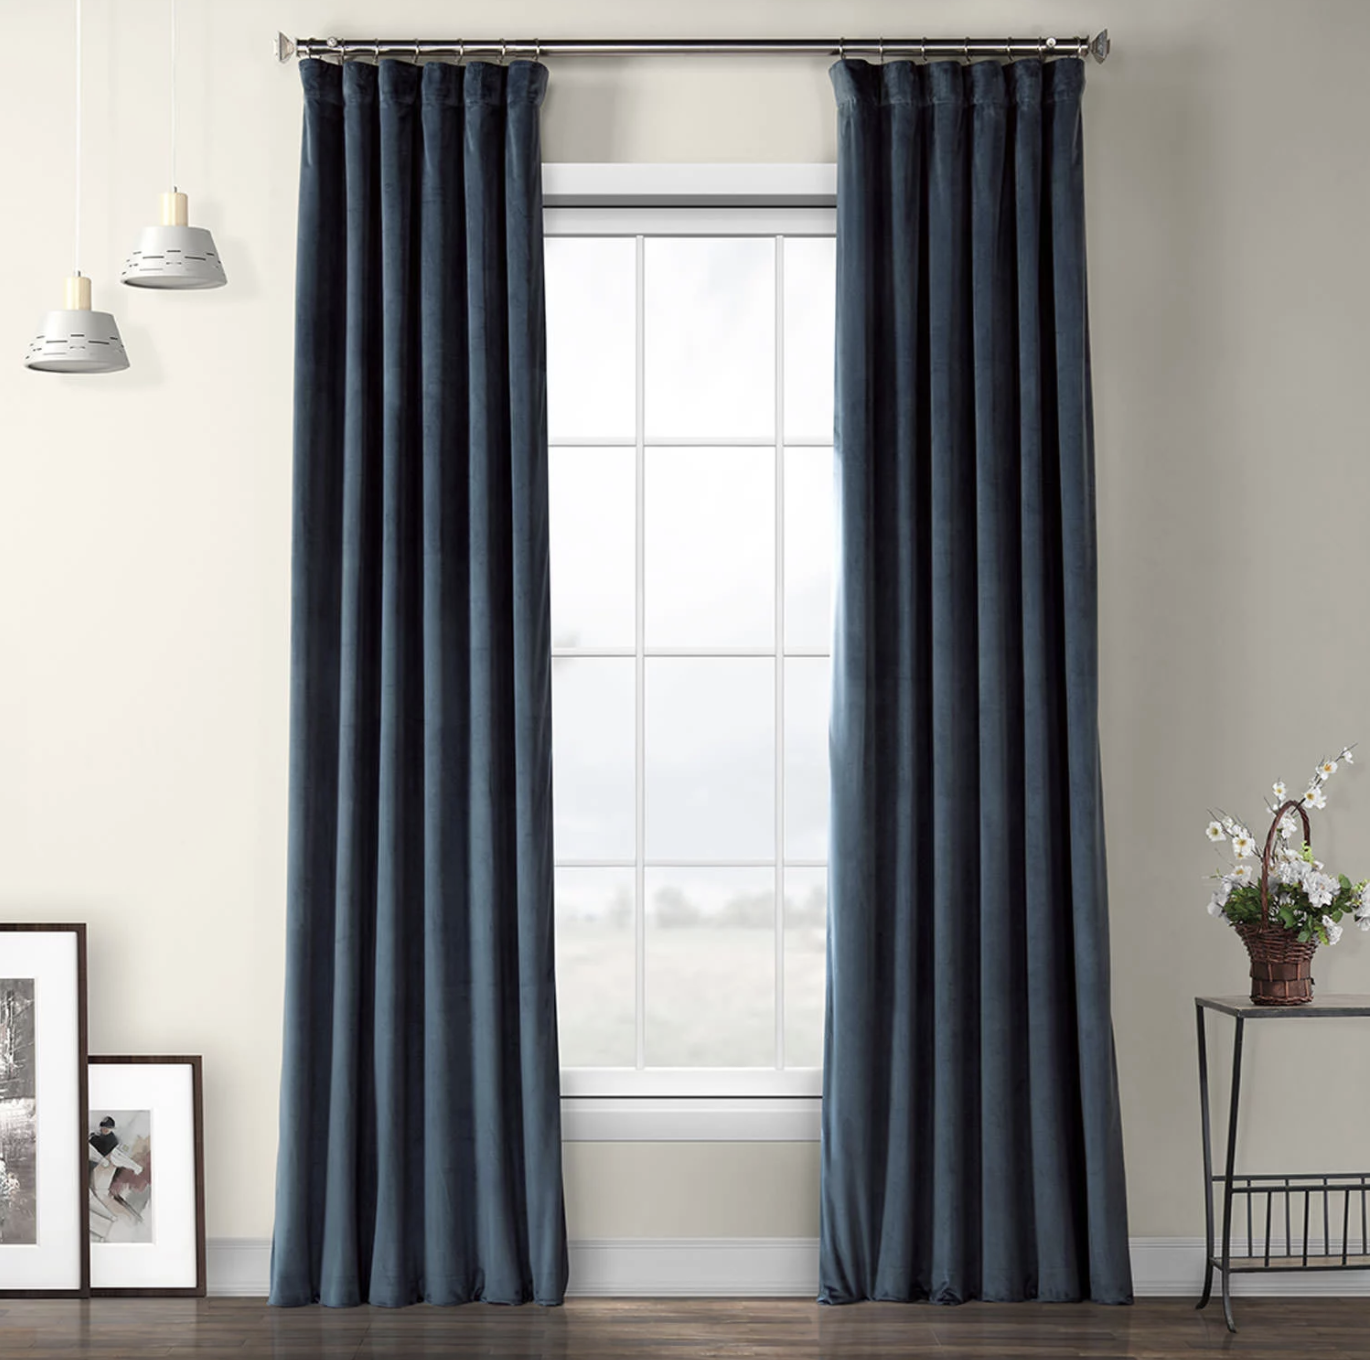 two avalon blue heritage plush velvet curtains hanging from a window